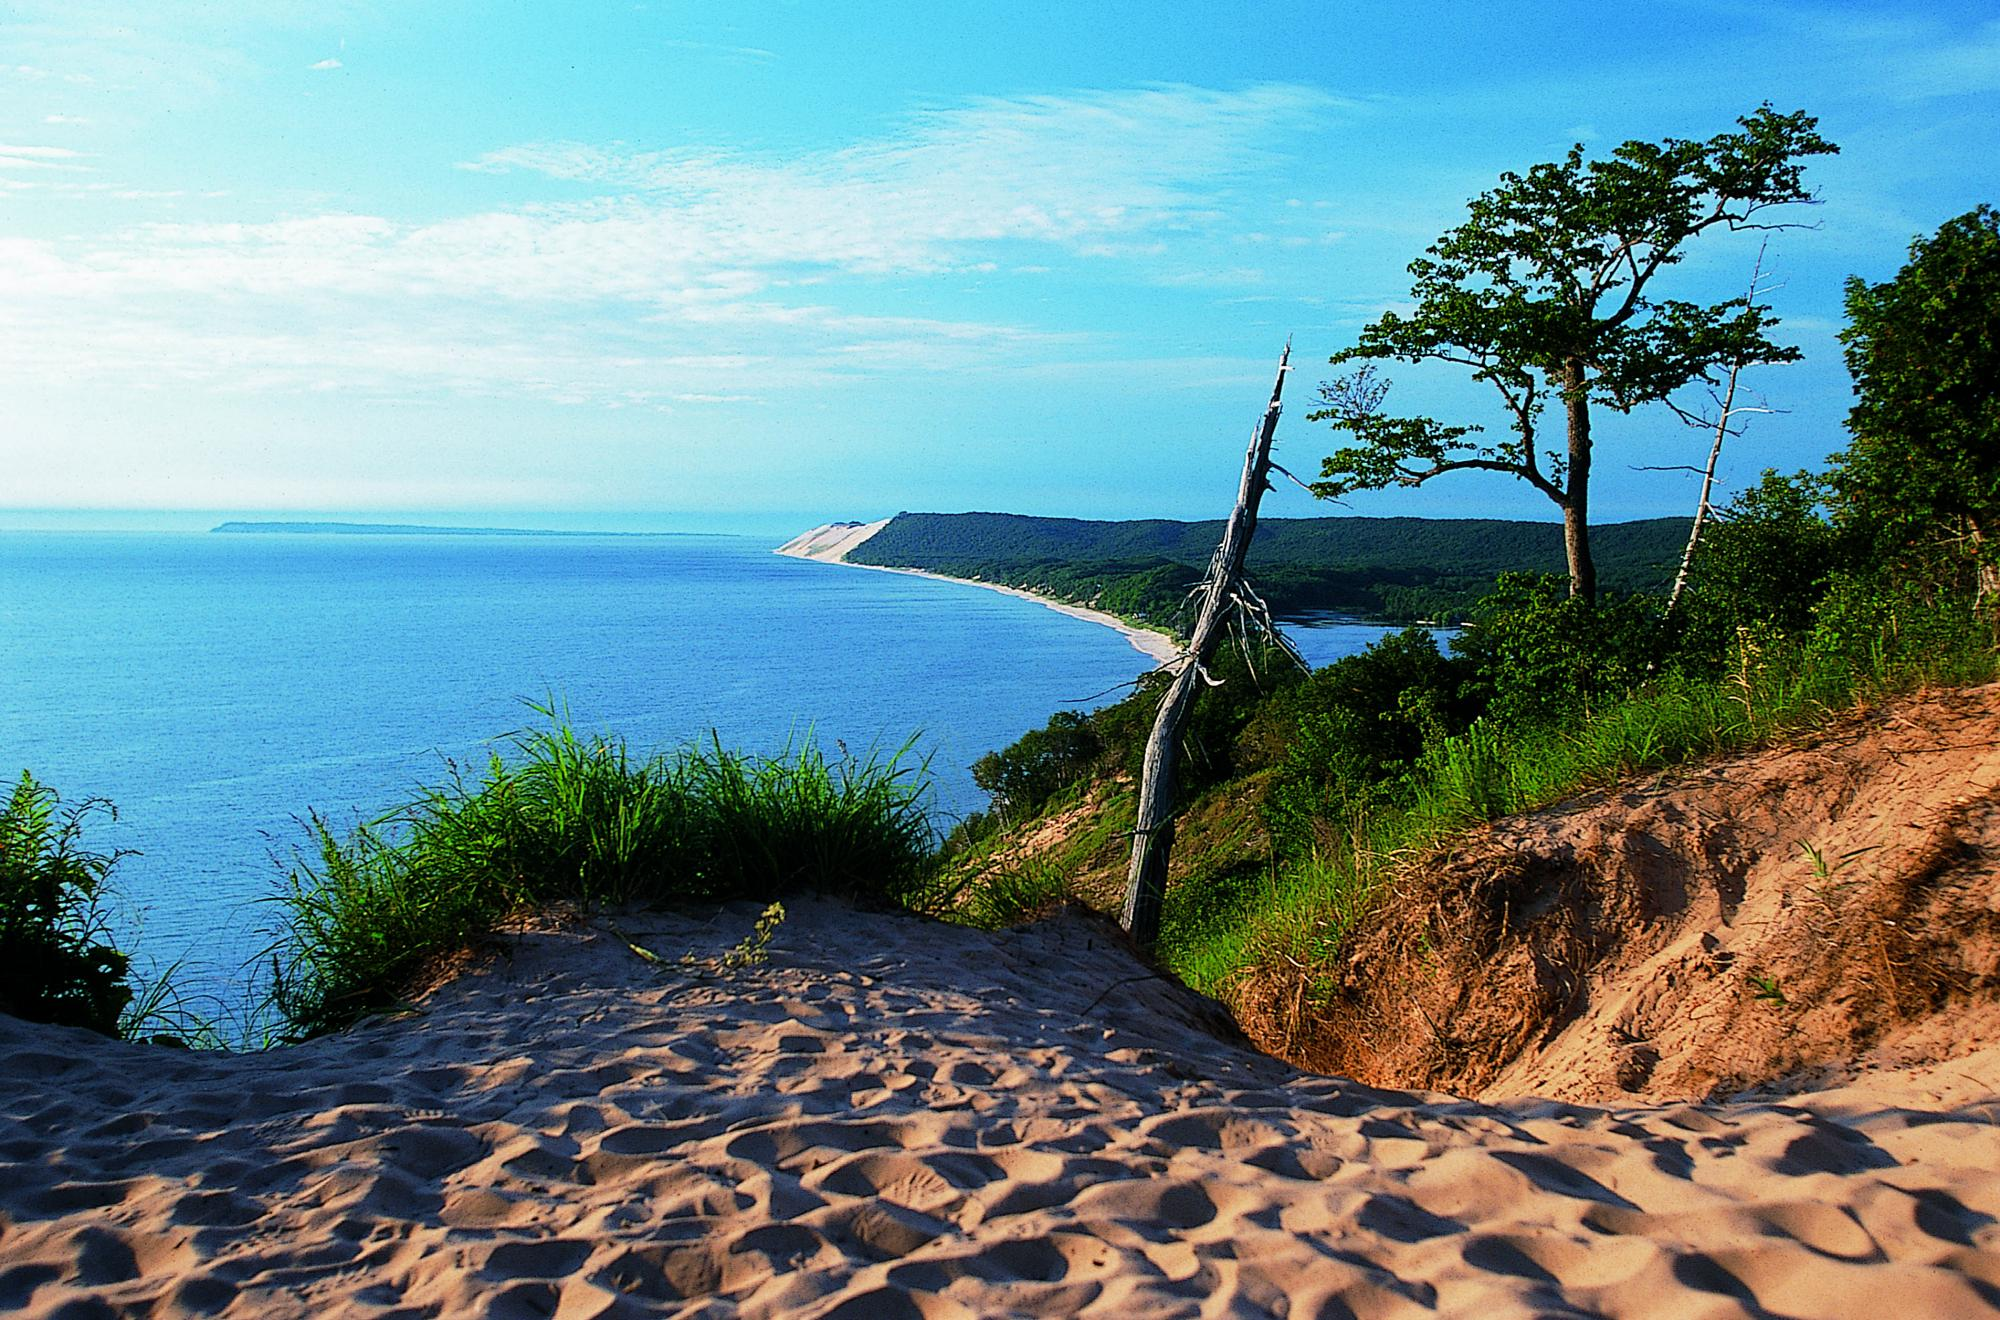 Empire Bluff in Sleeping Bear Dunes National Lakeshore, site of BWB 2015's field trip | Photo courtesy of Traverse City Tourism